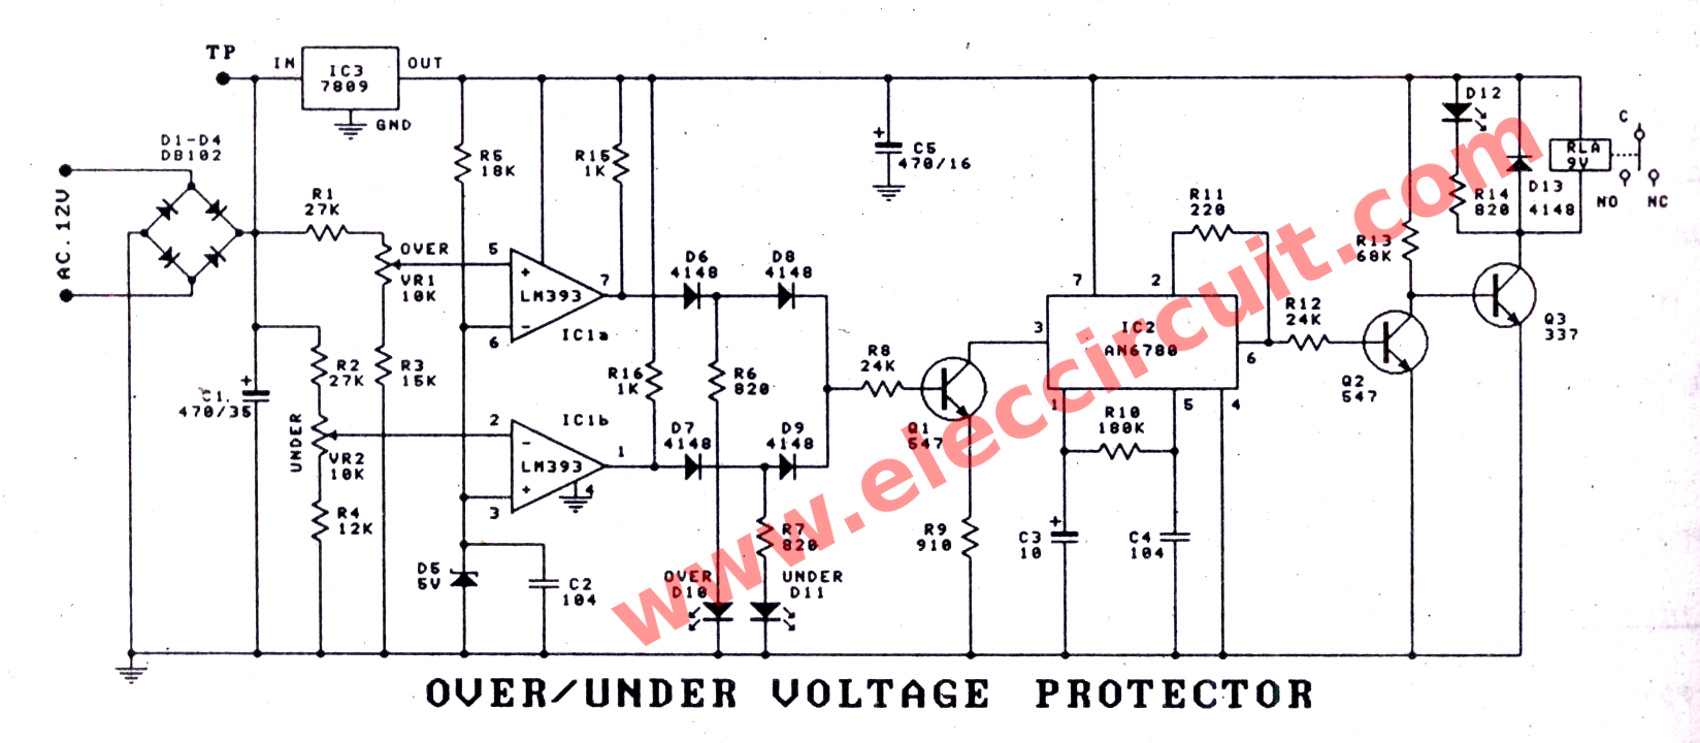 Over Under Voltage Protection Circuit Transformerless Power Supply Eleccircuitcom 0ver Protector Using Lm393